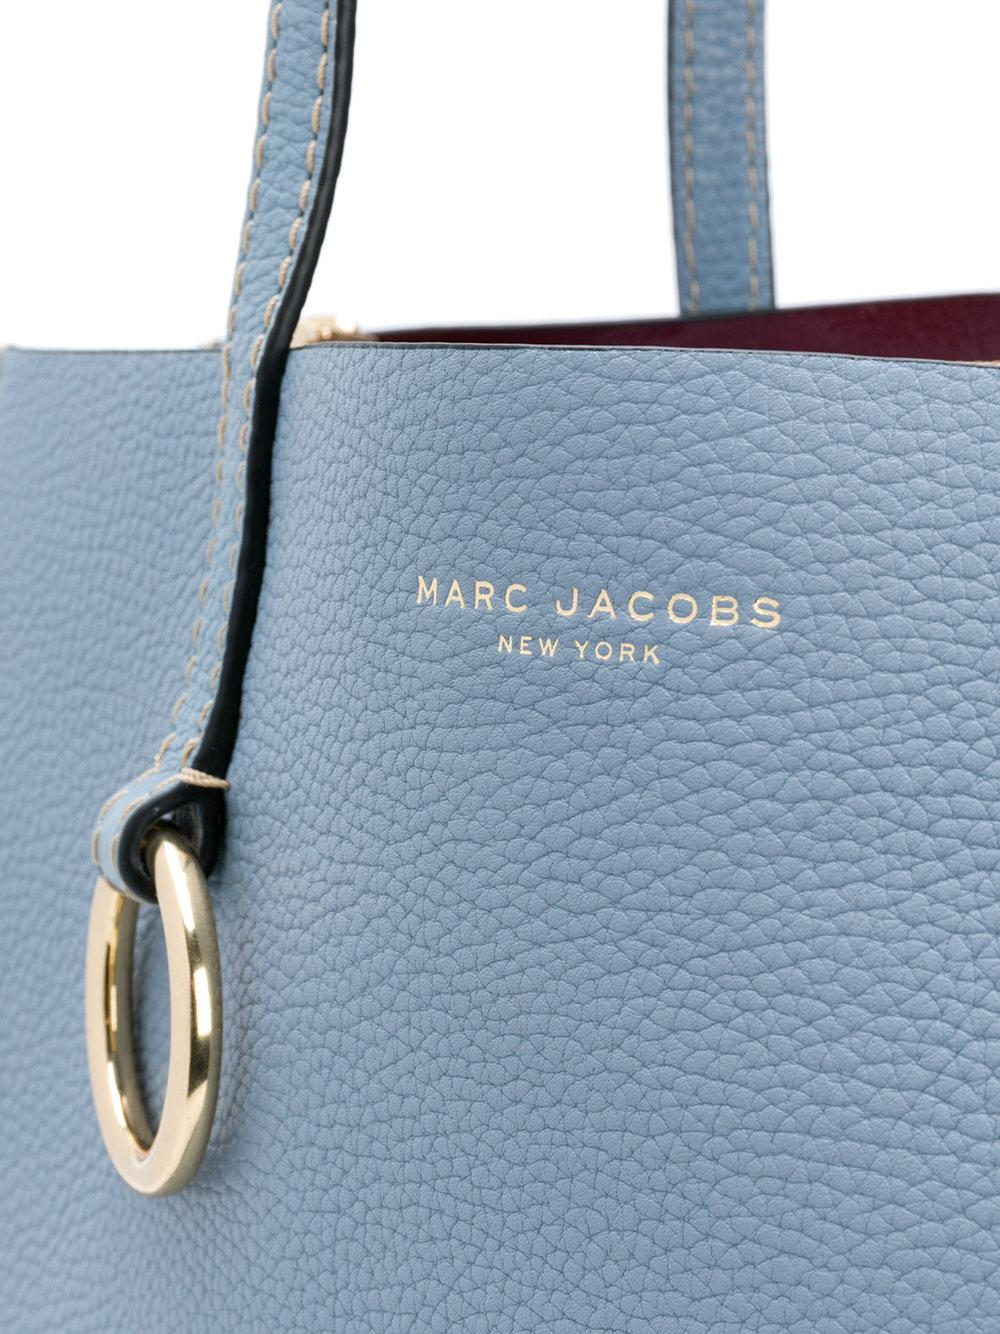 Marc Jacobs Leather The Bold Grind Shopper Tote in Blue